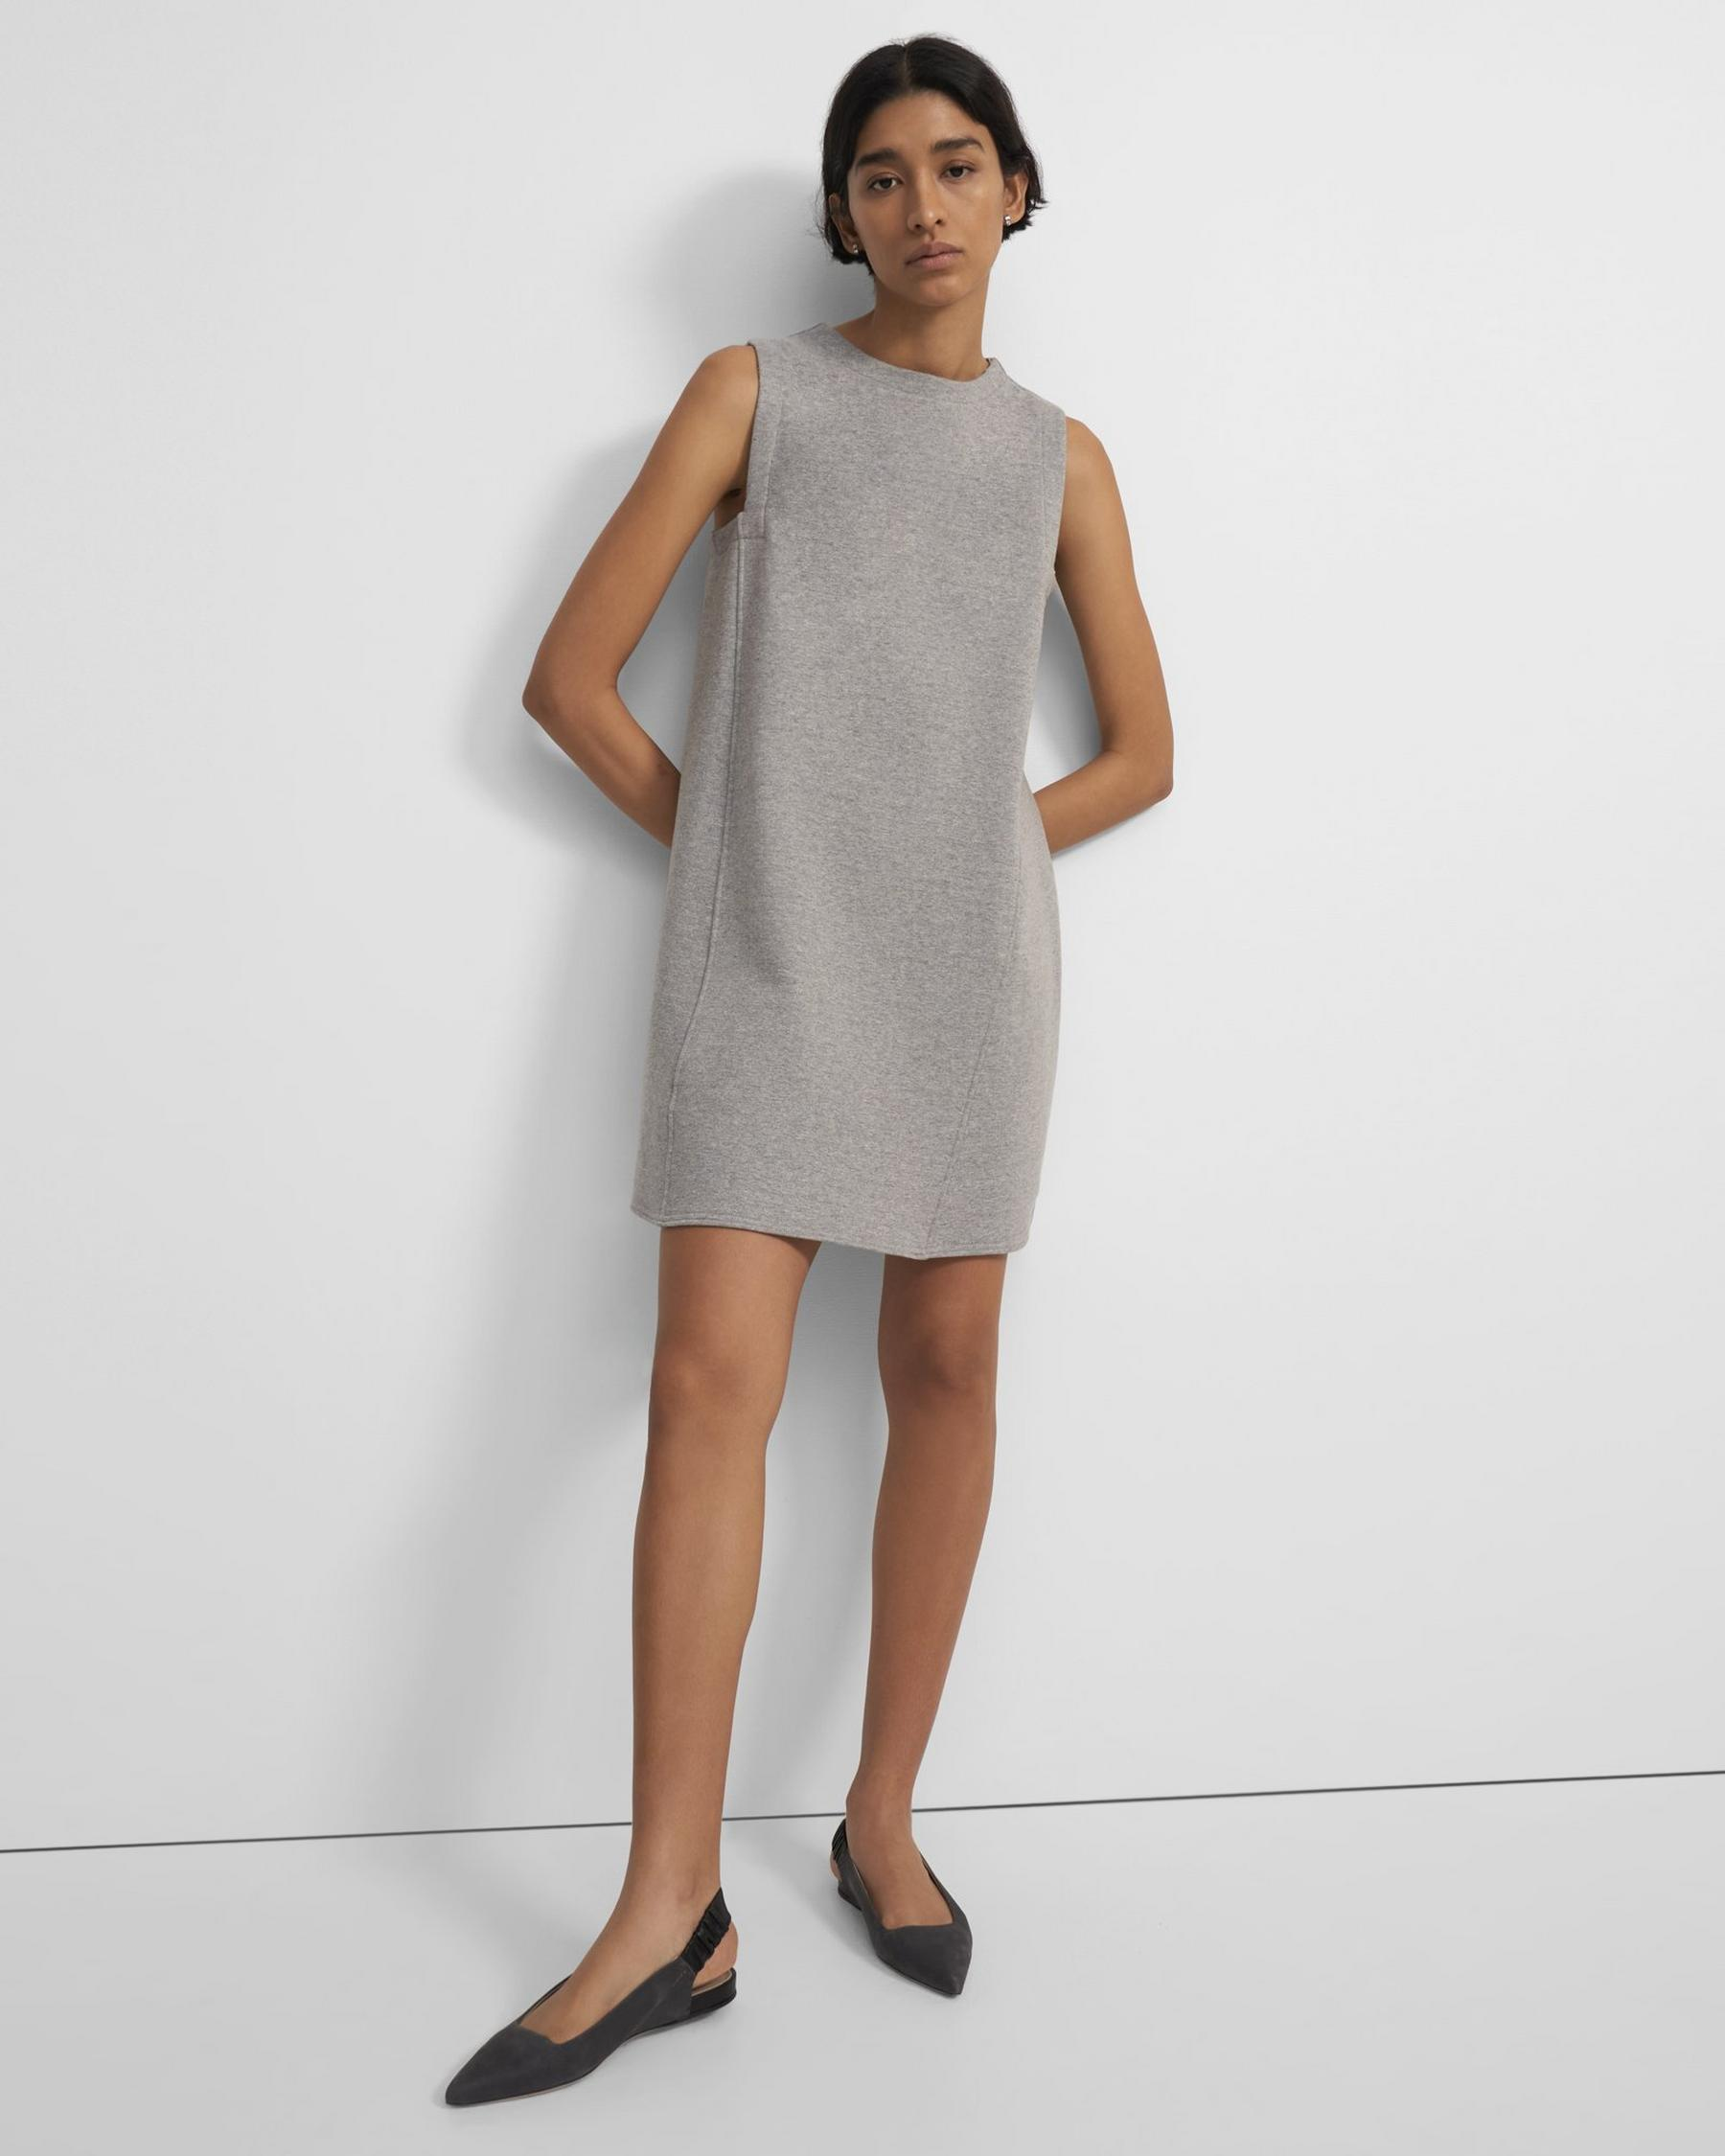 Reversible Sleeveless Tent Dress in Cotton Terry